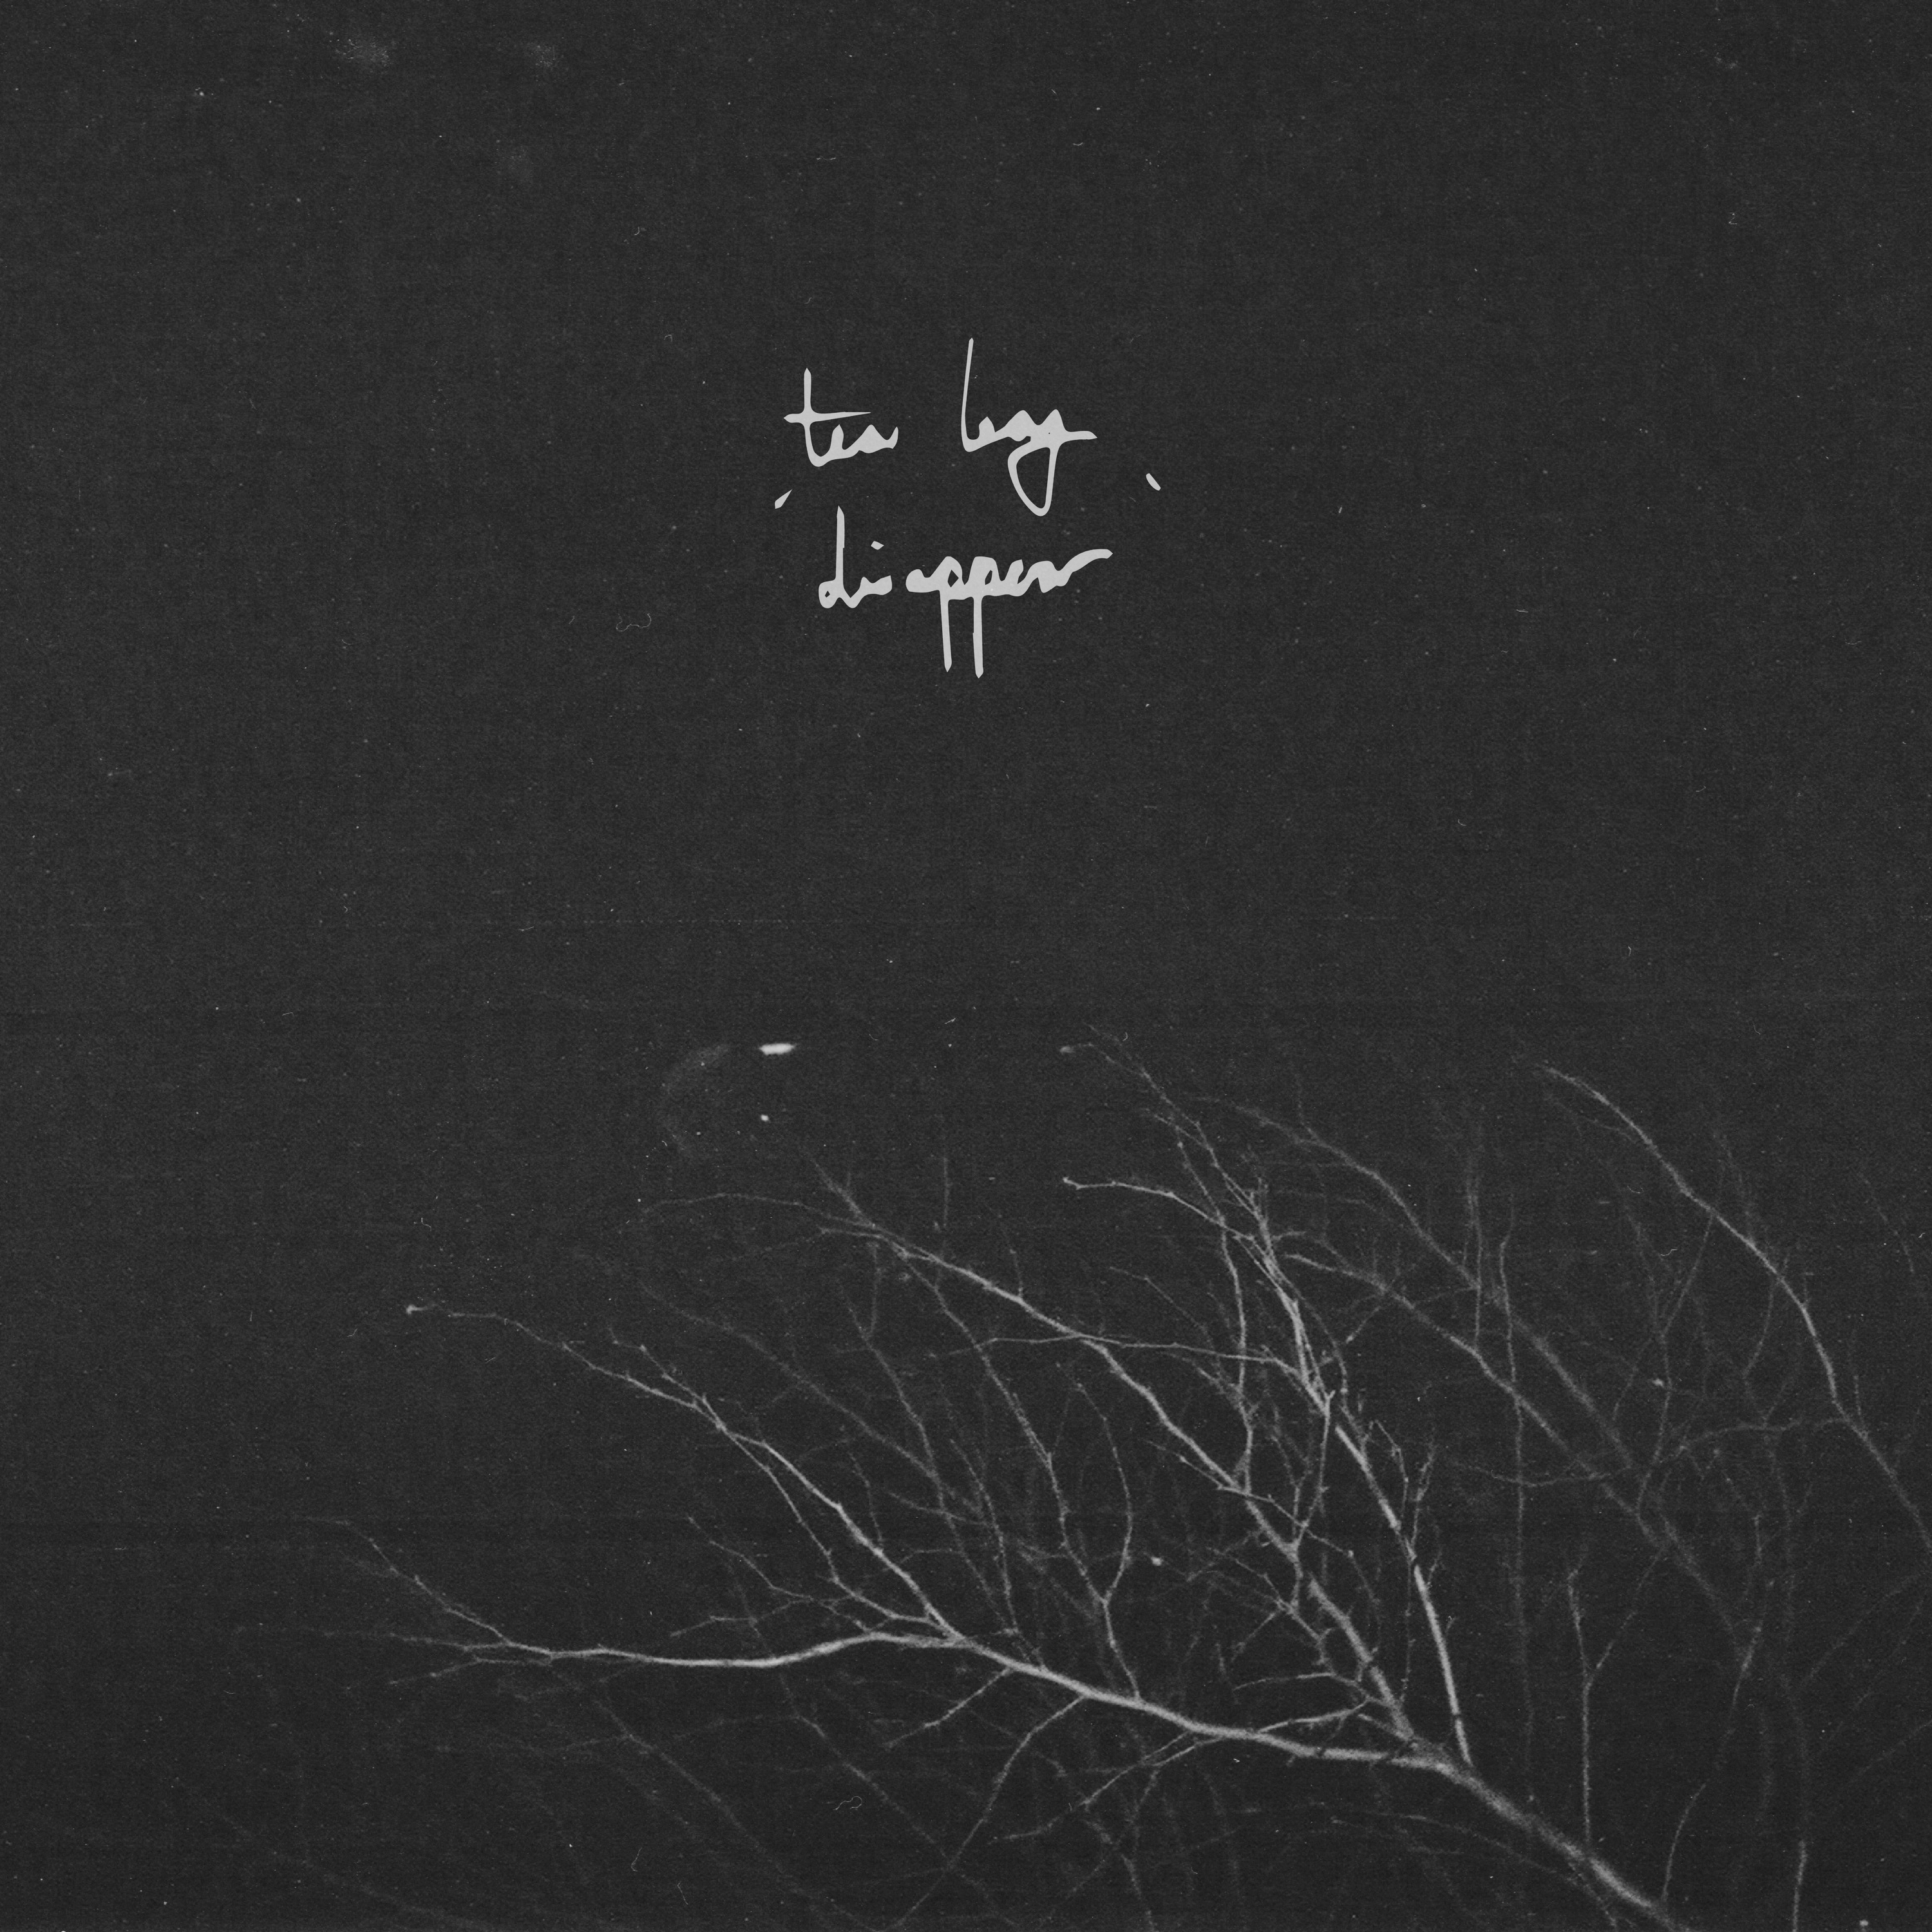 Tea Leaf - Disappear